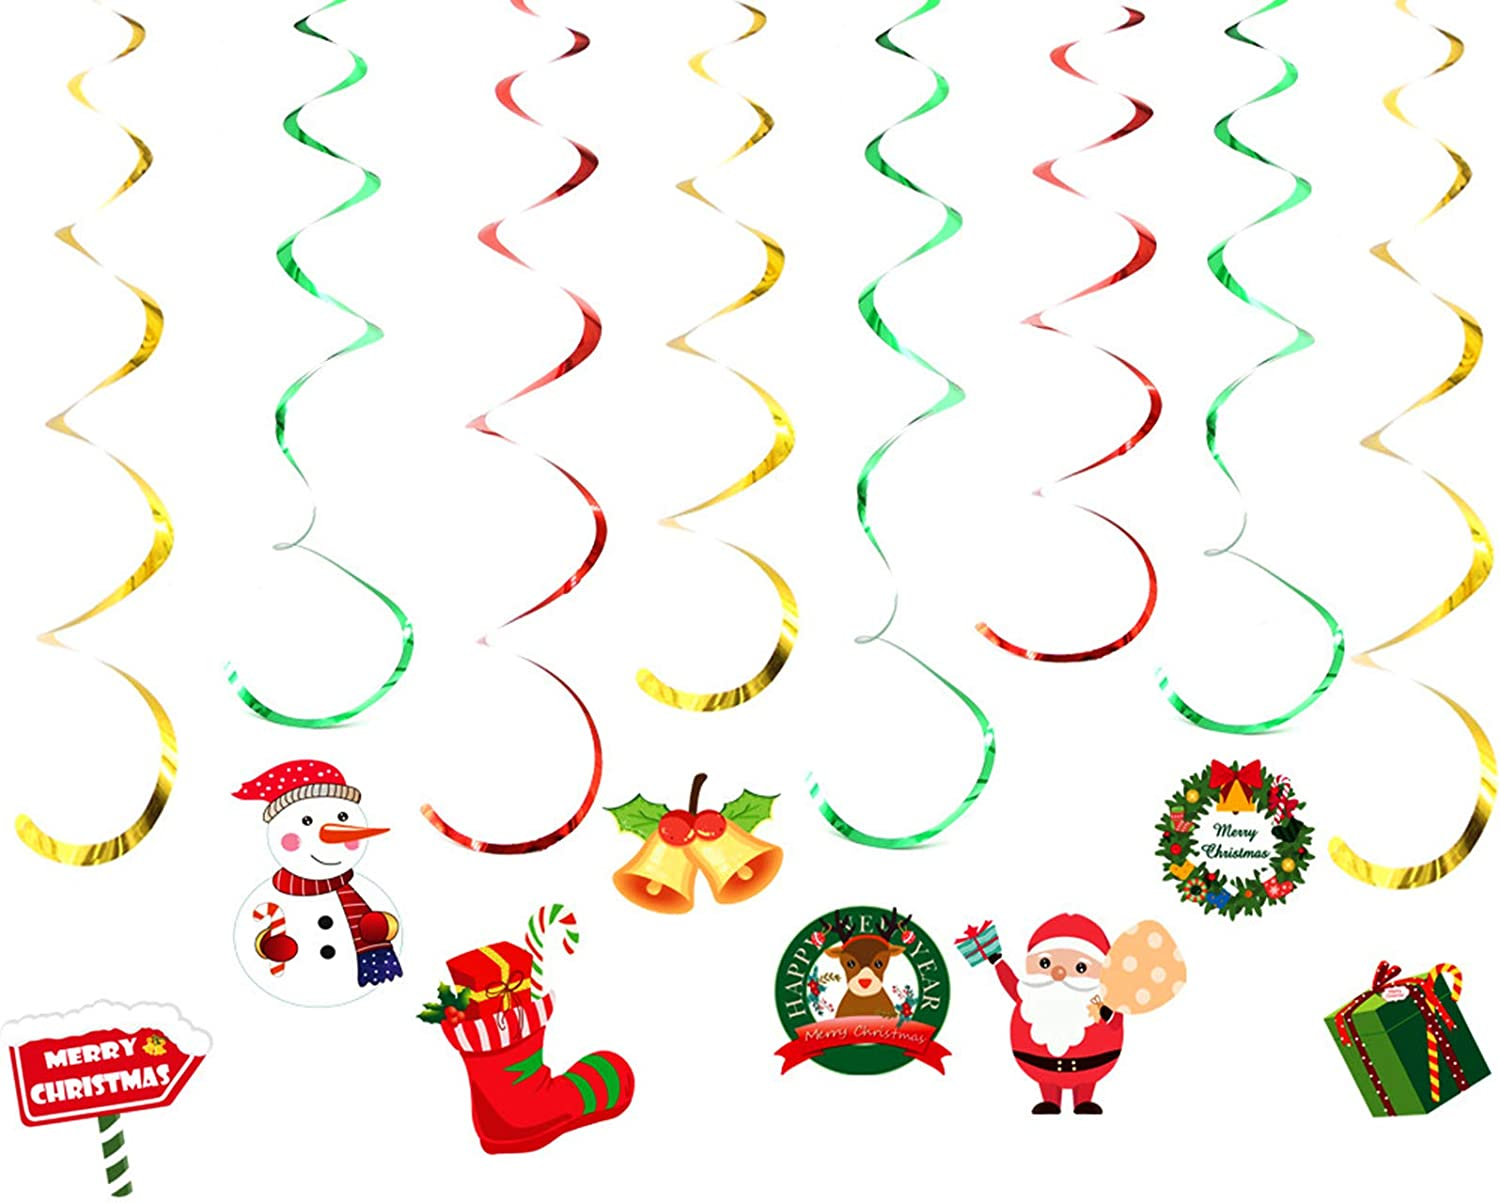 Birthday Party Accessory /& Decoration Happy Christmas Banner Latex Balloons and Hanging Swirls for Christmas Bar Home Decor,Baby Shower Rainmae Christmas Party Decoration Supplies Set